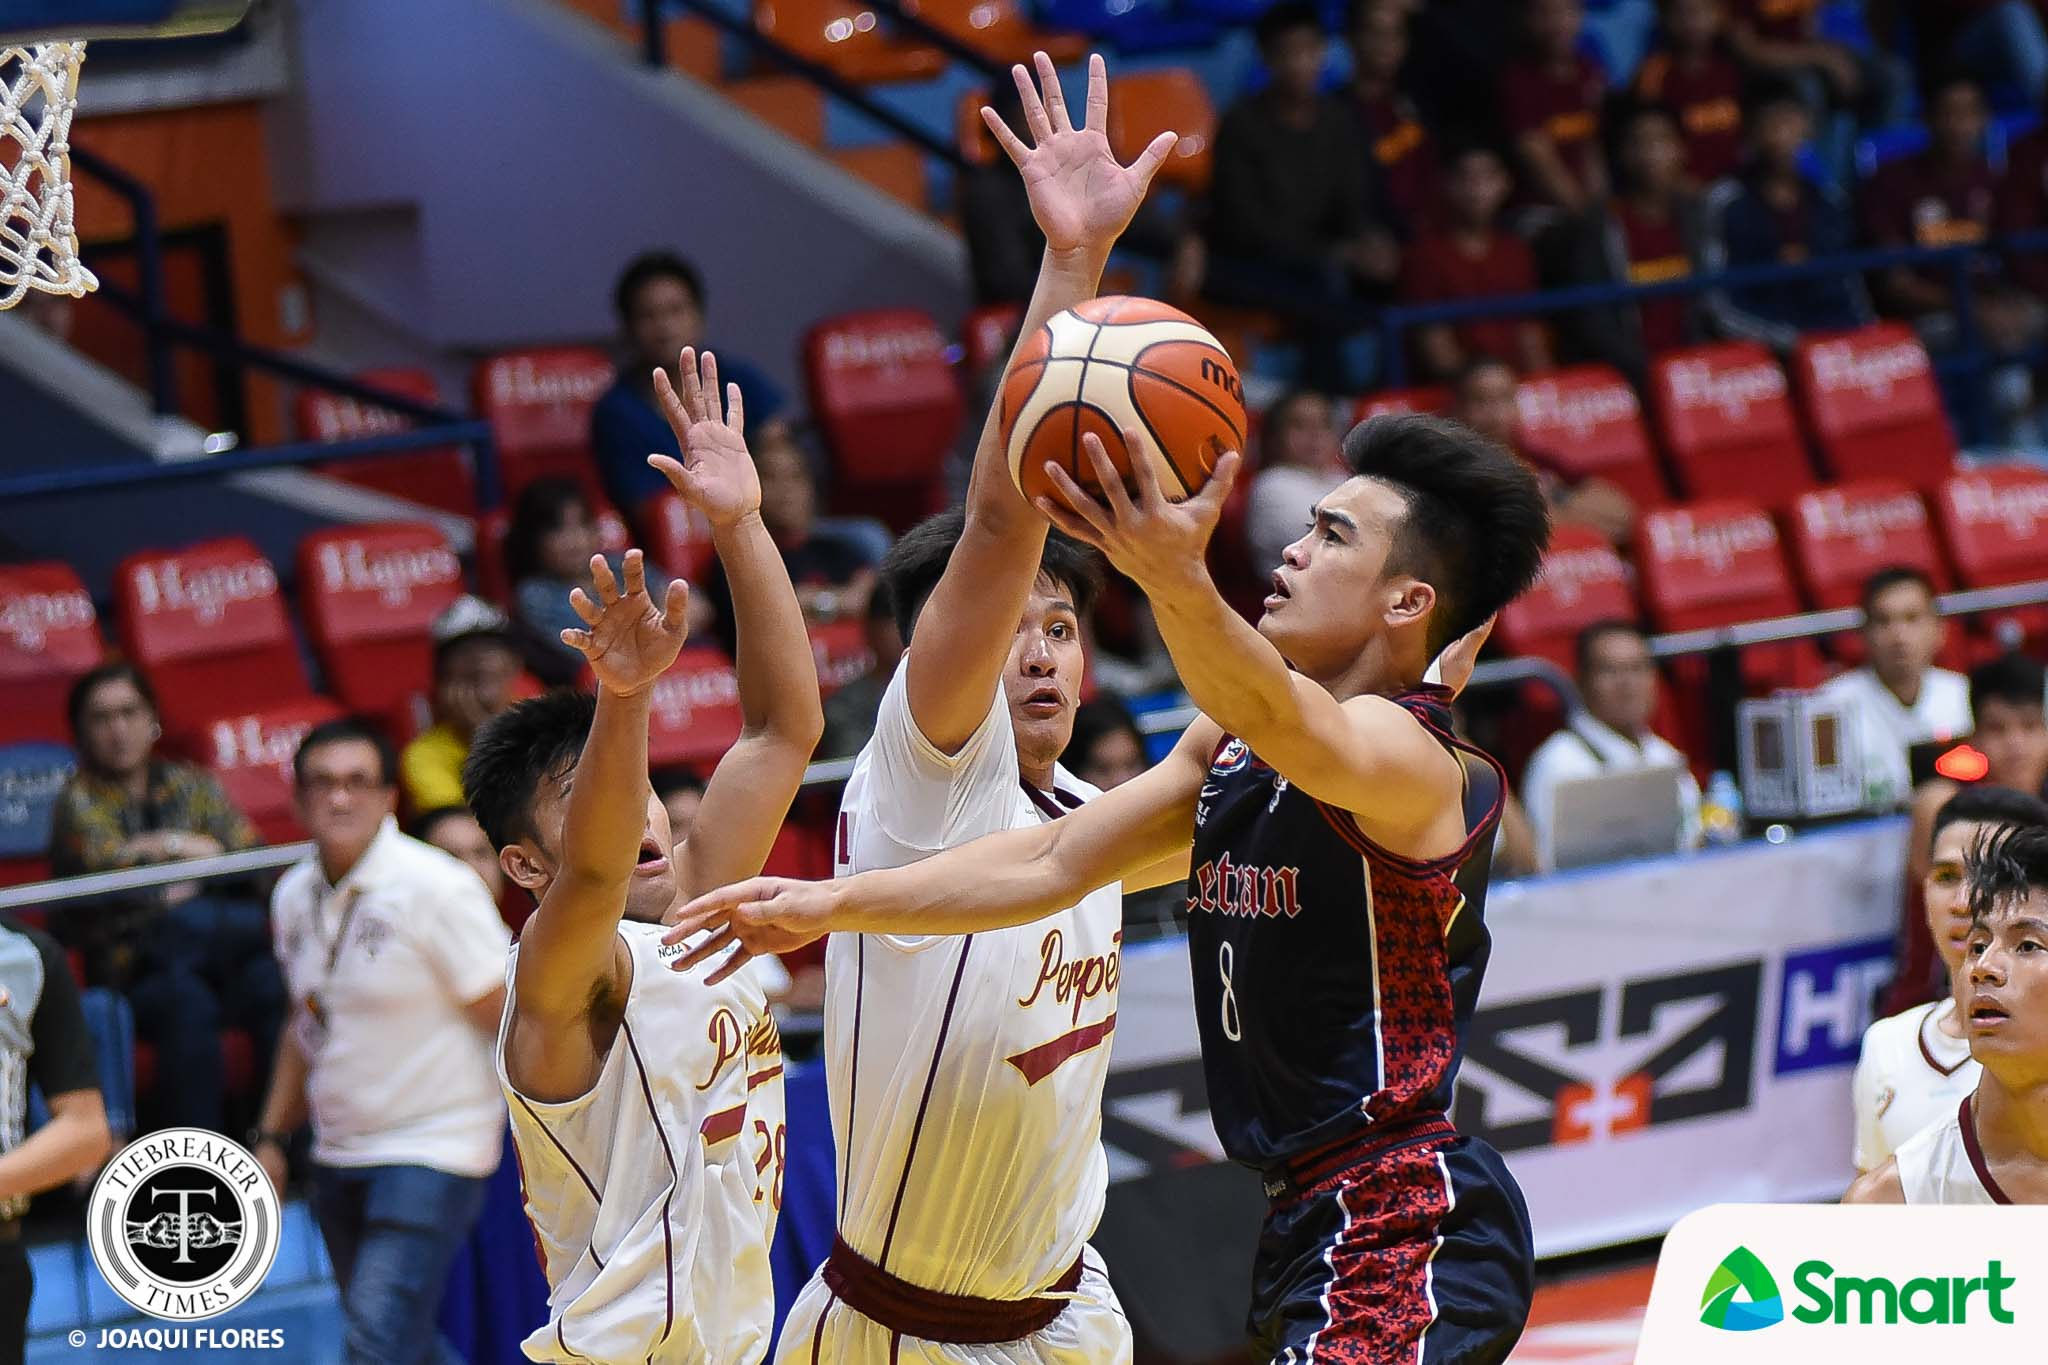 Tiebreaker Times Jeff Napa relays trust on Bong Quinto, JP Calvo despite defeat Basketball CSJL NCAA News  NCAA Season 94 Seniors Basketball NCAA Season 94 Letran Seniors Basketball JP Calvo Jeff Napa Bong Quinto